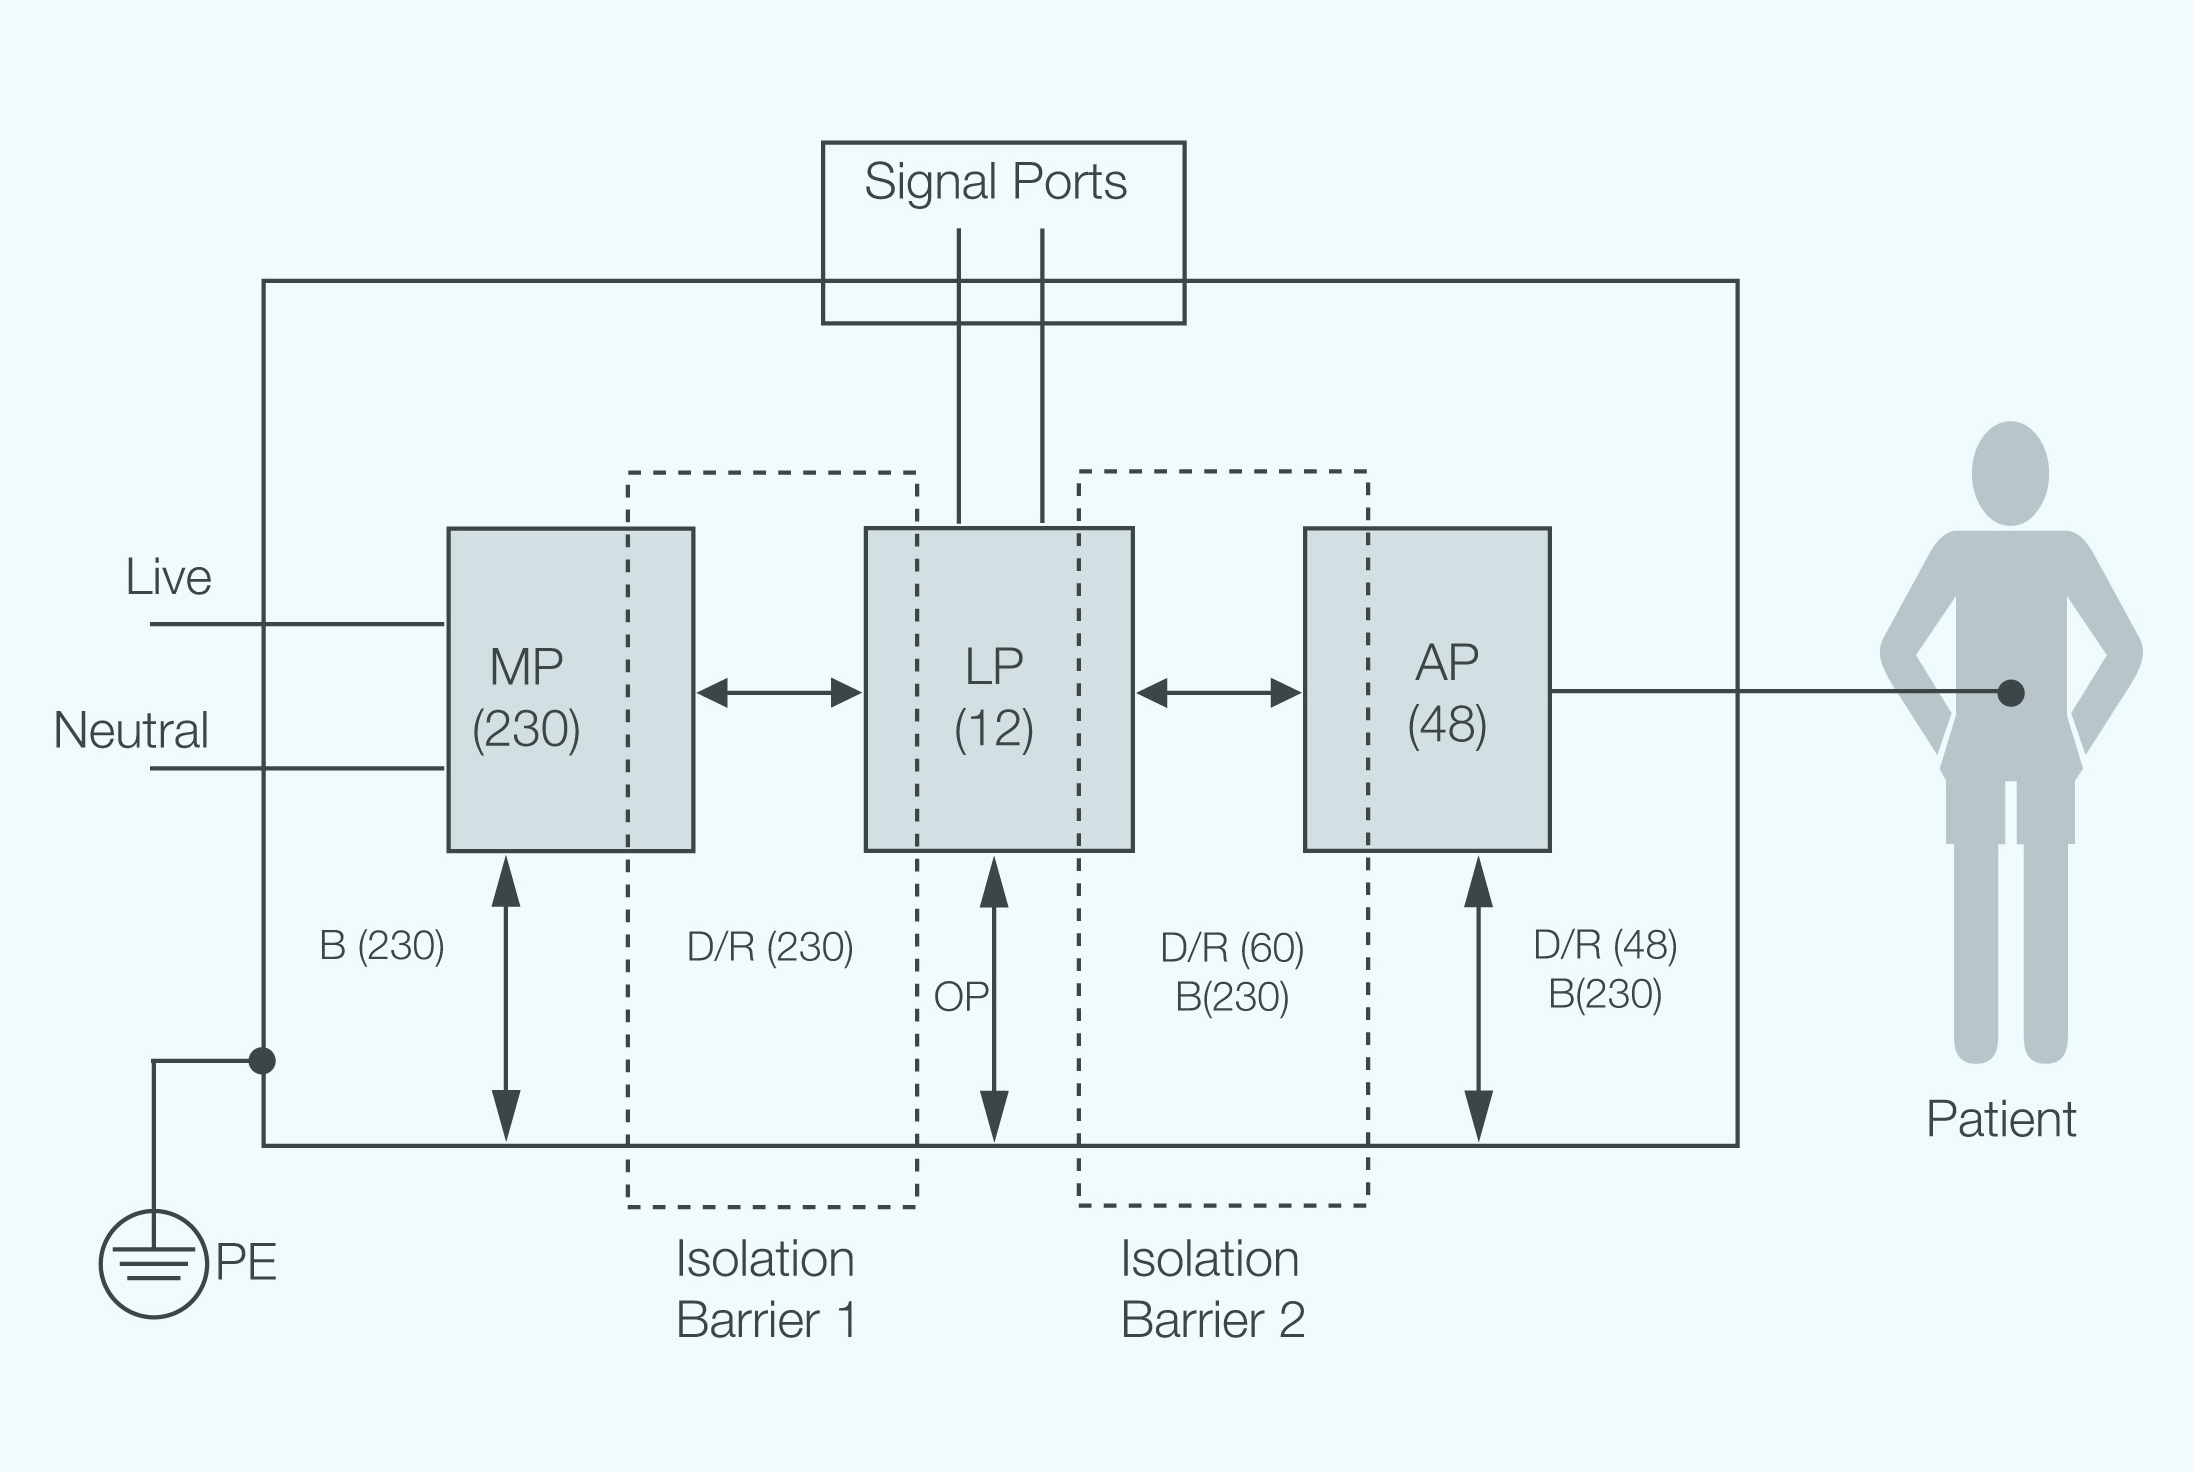 Medical Standard Challenges Iec60601 Understanding The Changes Reed Relay Contact Protection Diagram 3 From 2nd To 3rd Edition Page Of 6